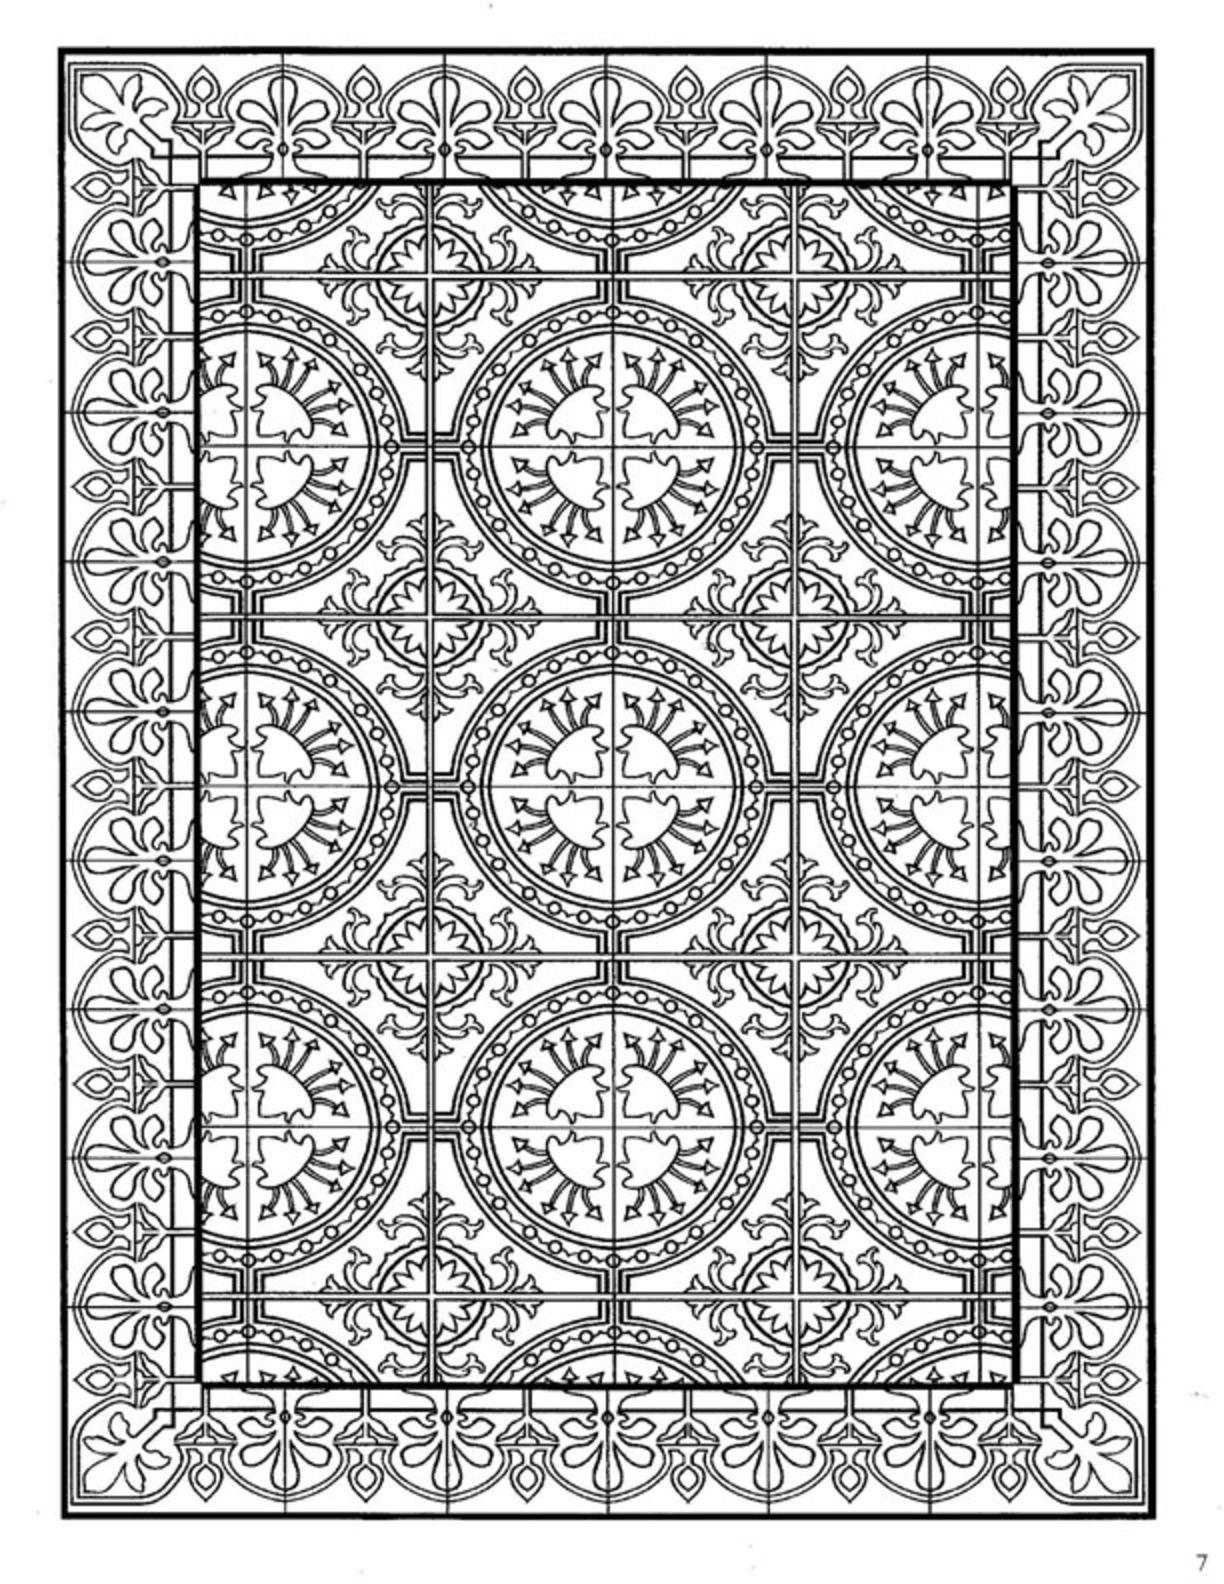 dover decorative tile coloring book dover coloring pinterest rh pinterest com islamic tile coloring pages tie